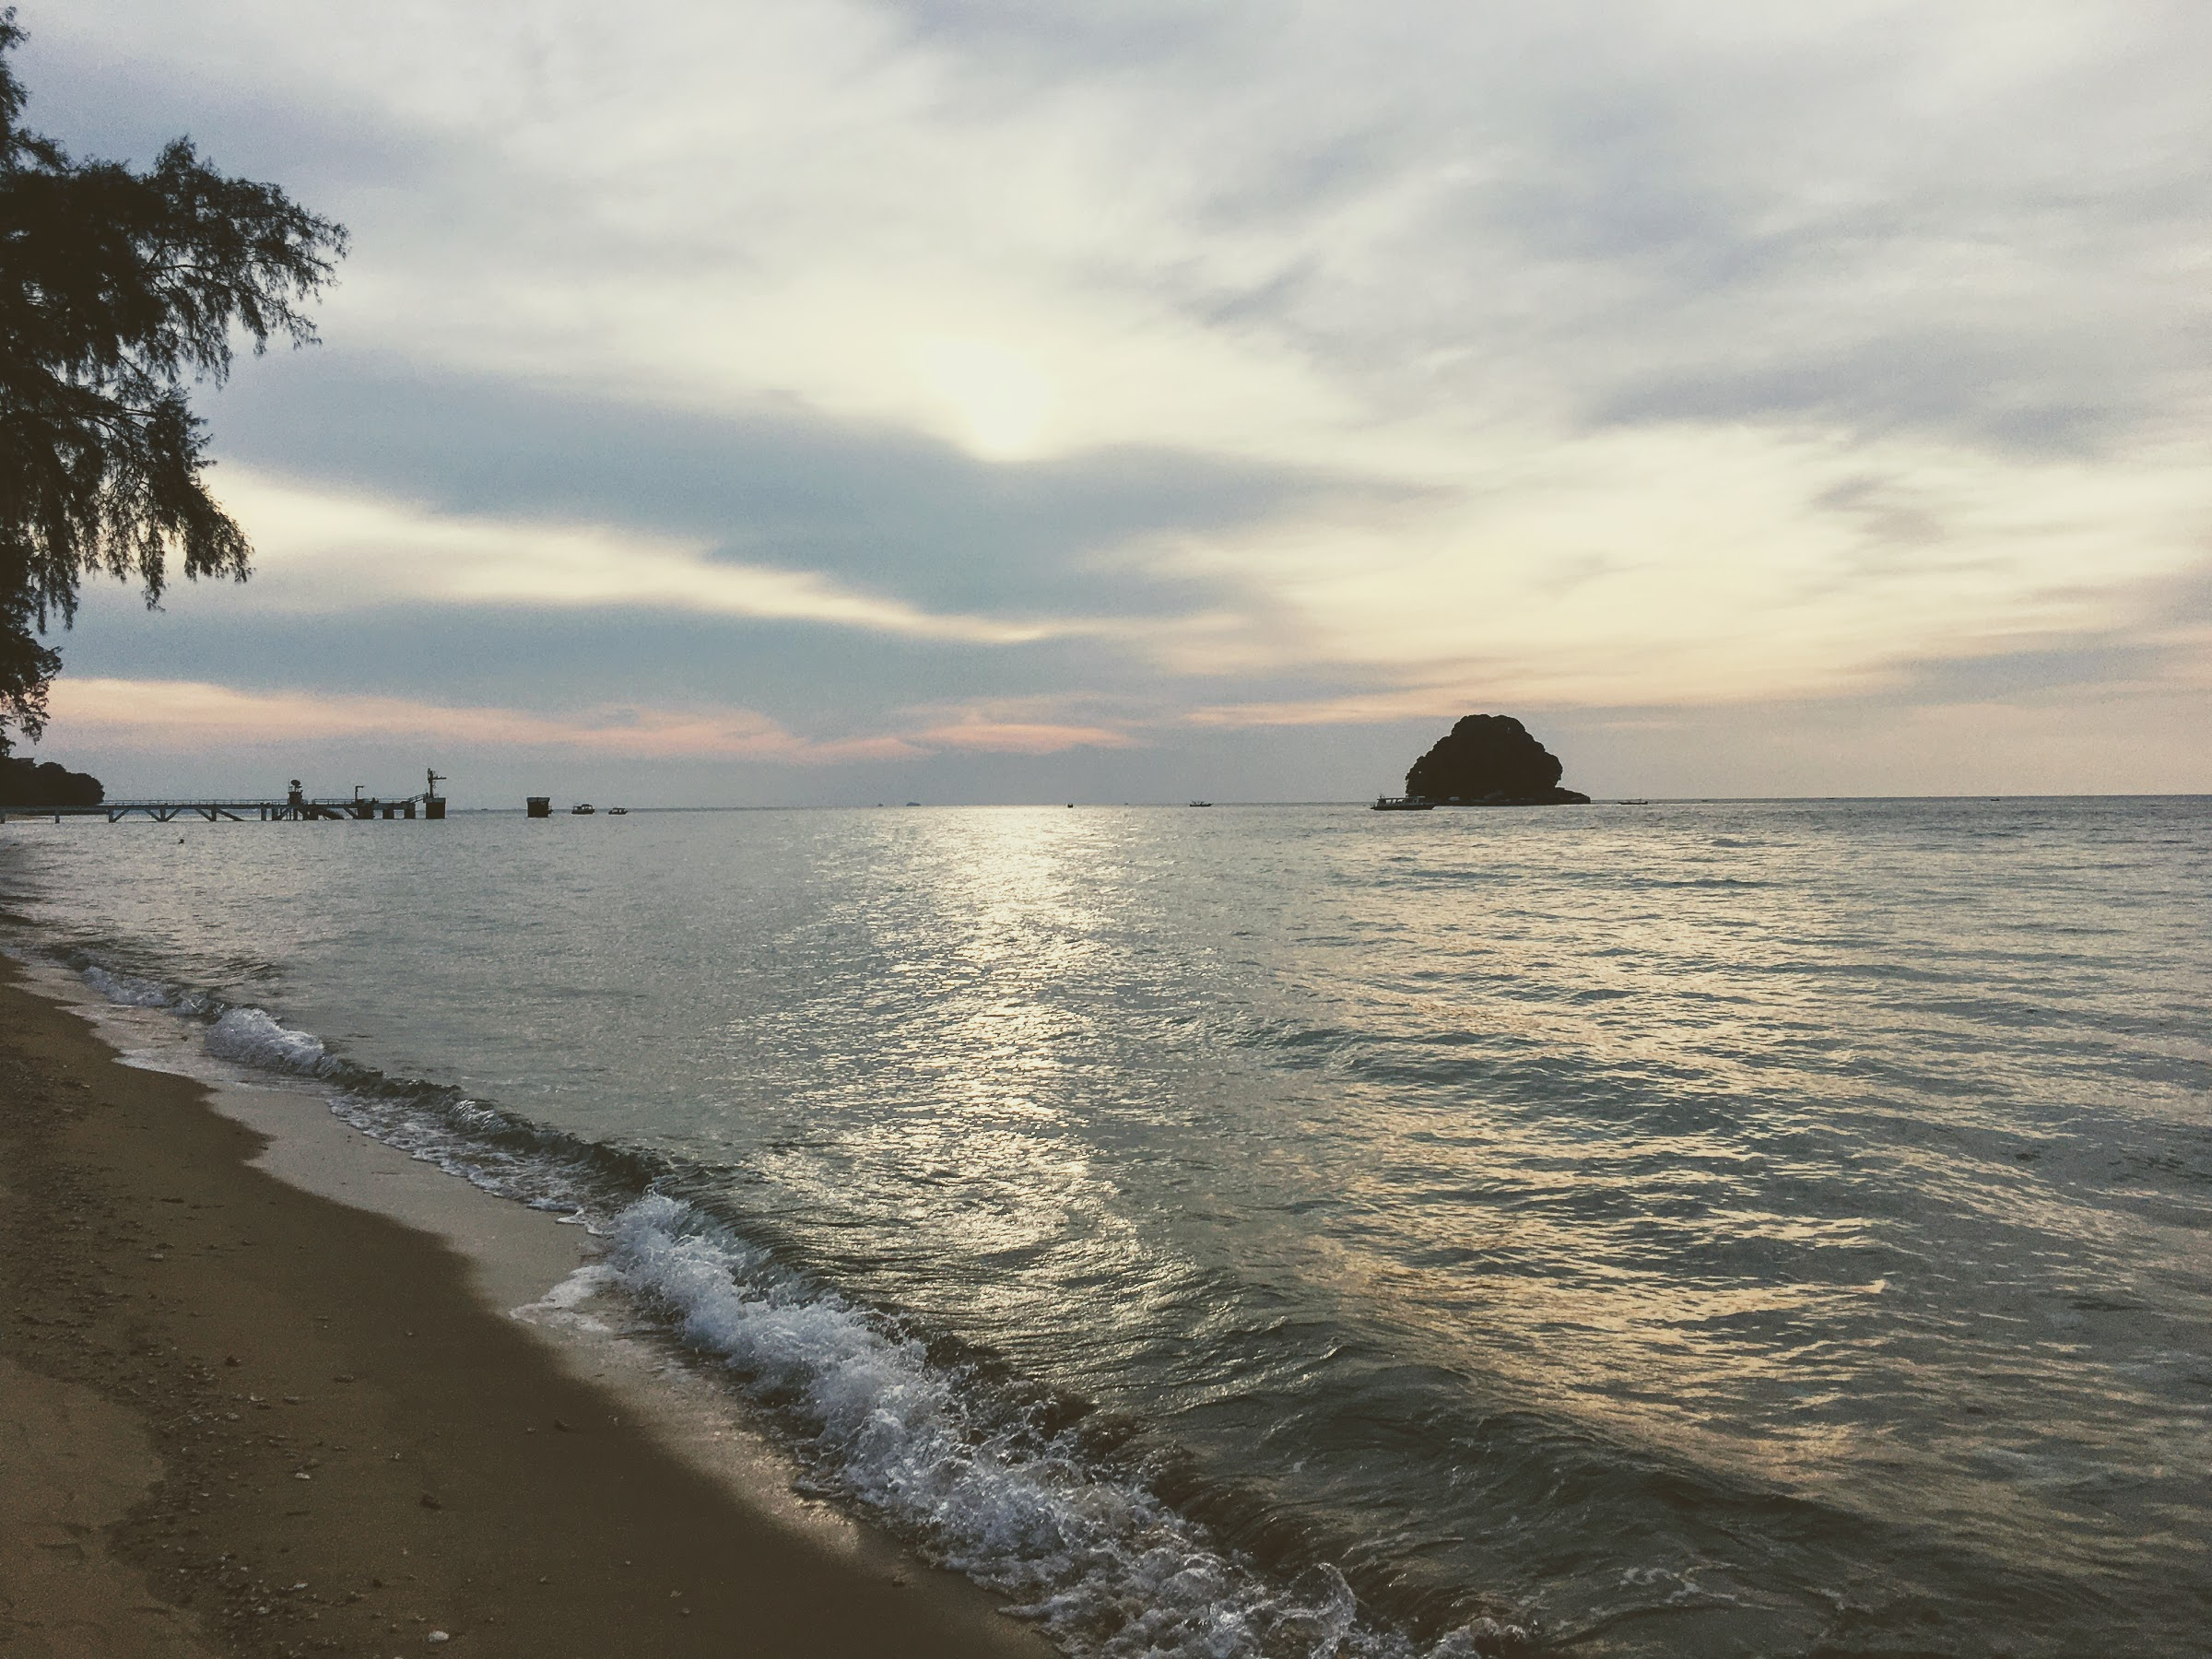 Sunset at the Resort. This is our honest review of Berjaya Tioman